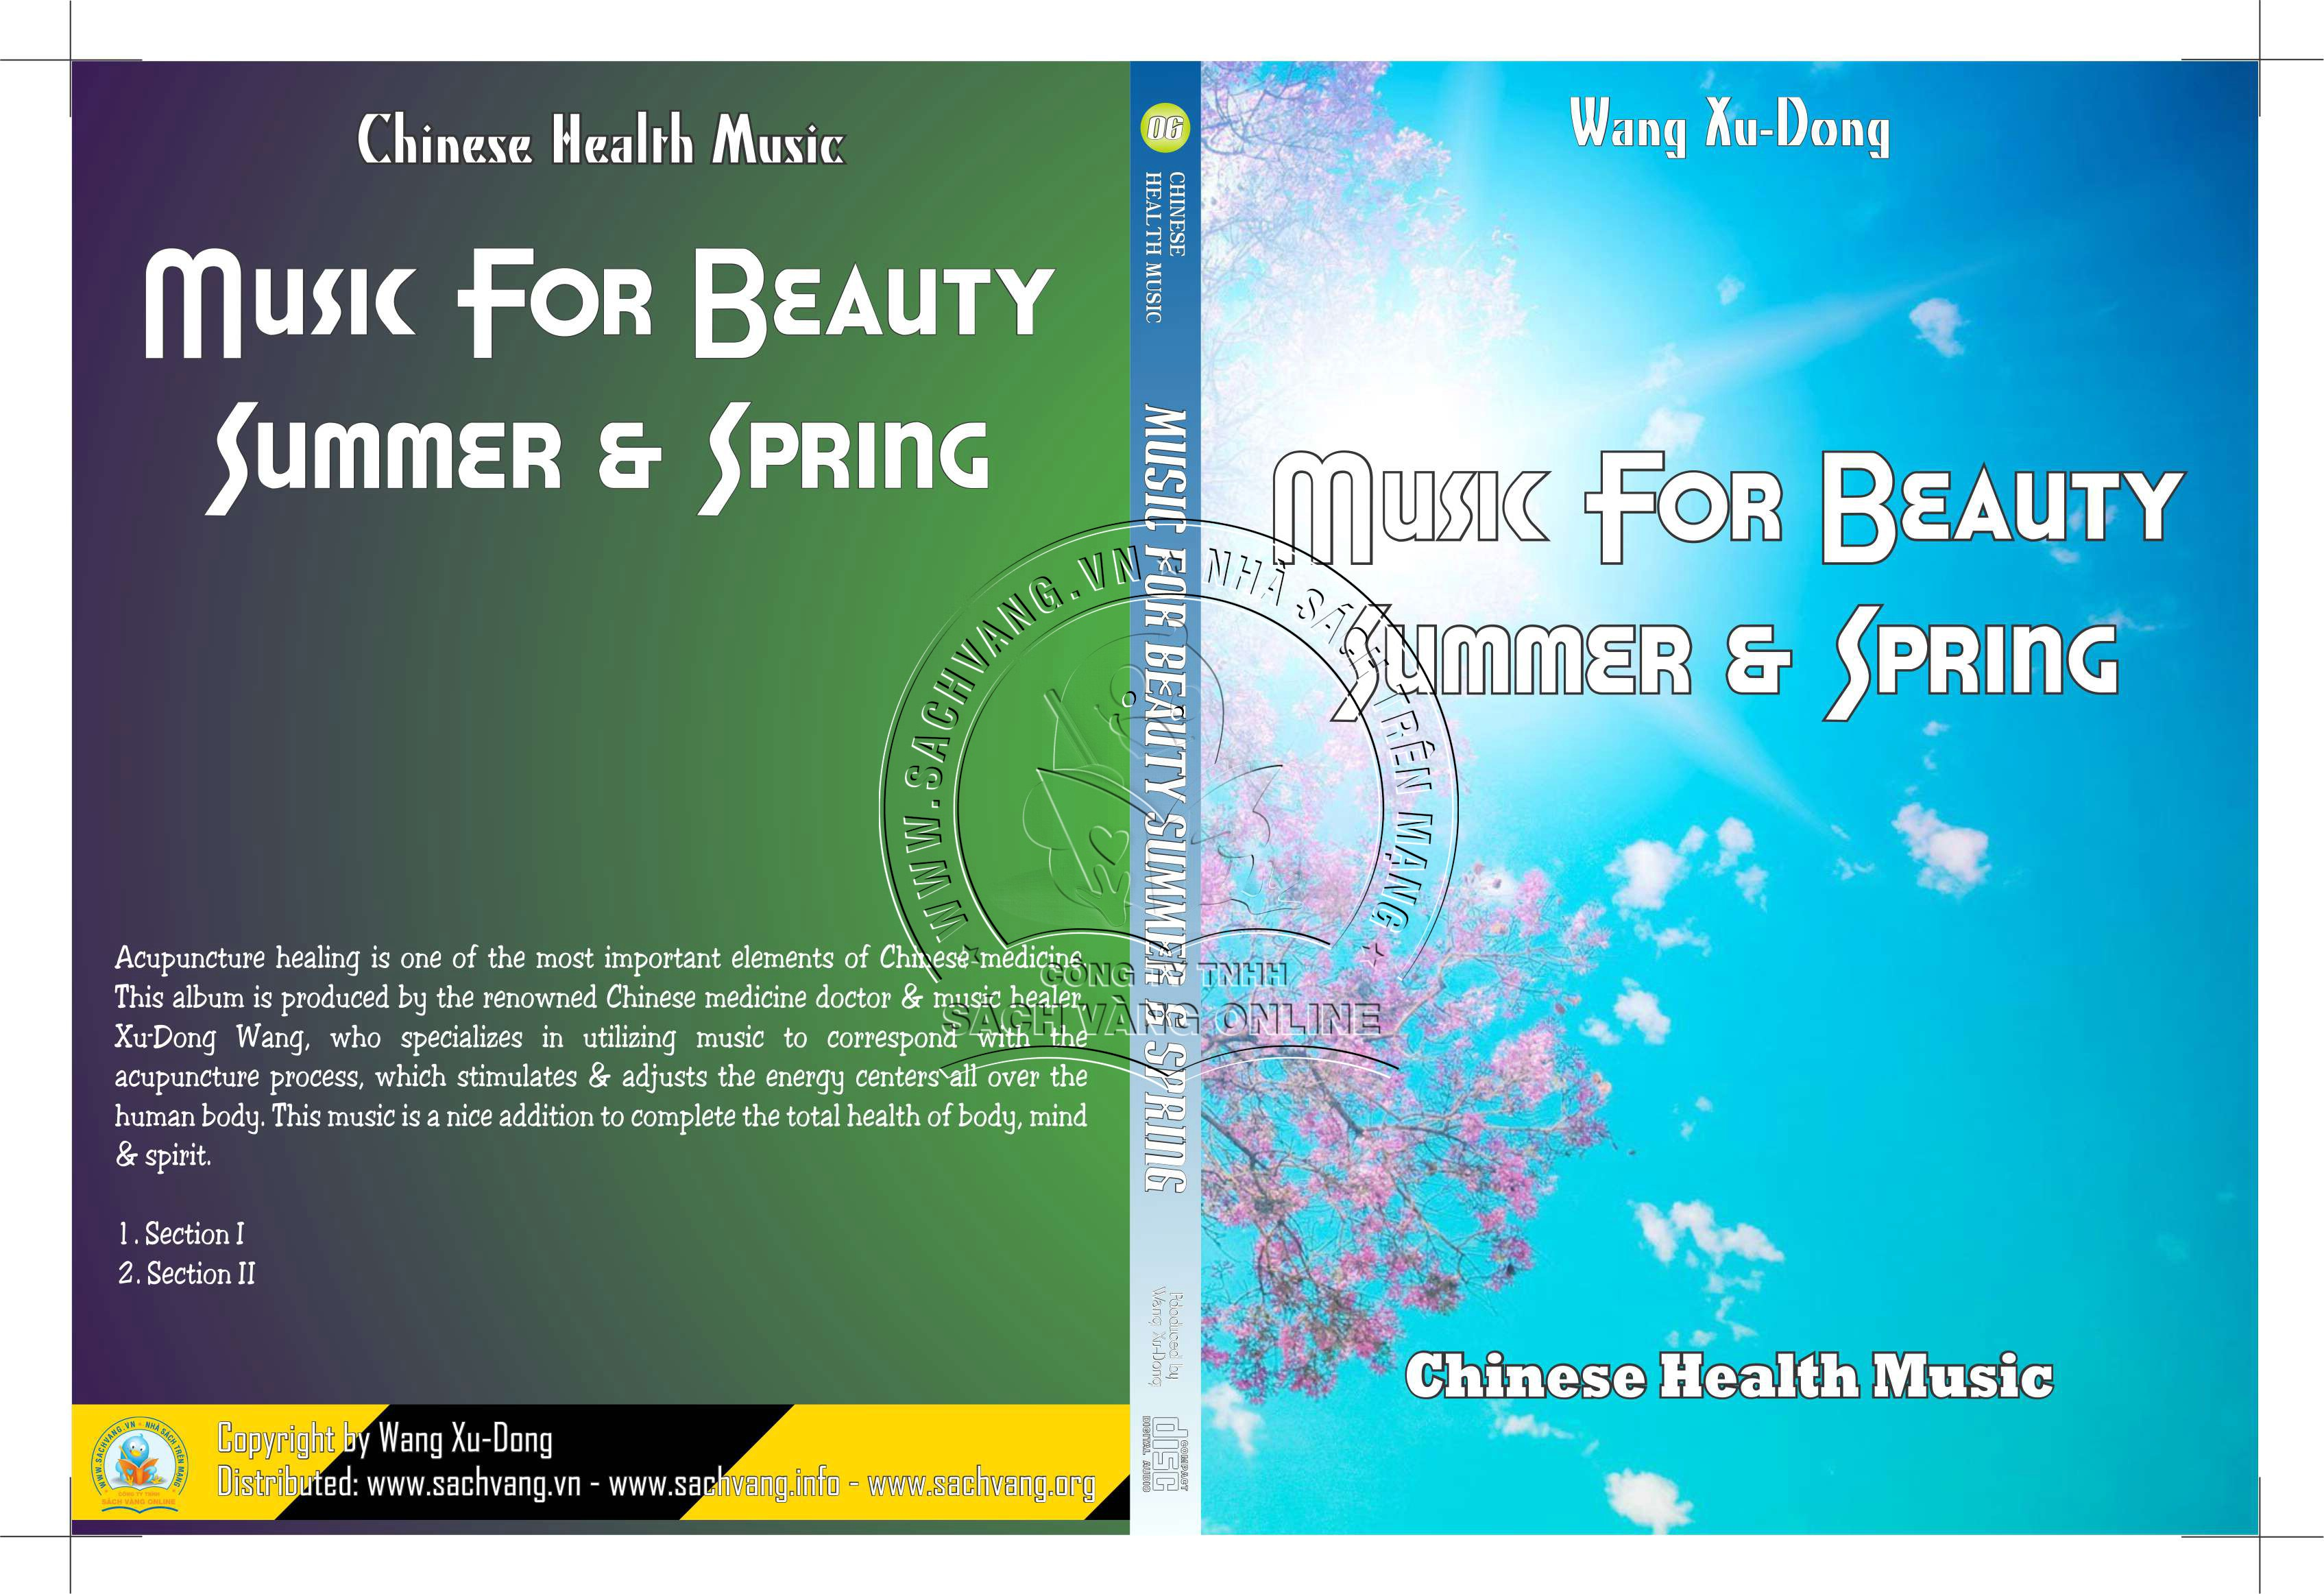 Chinese Health Music - 06 - Music for Beauty Summer and Spring